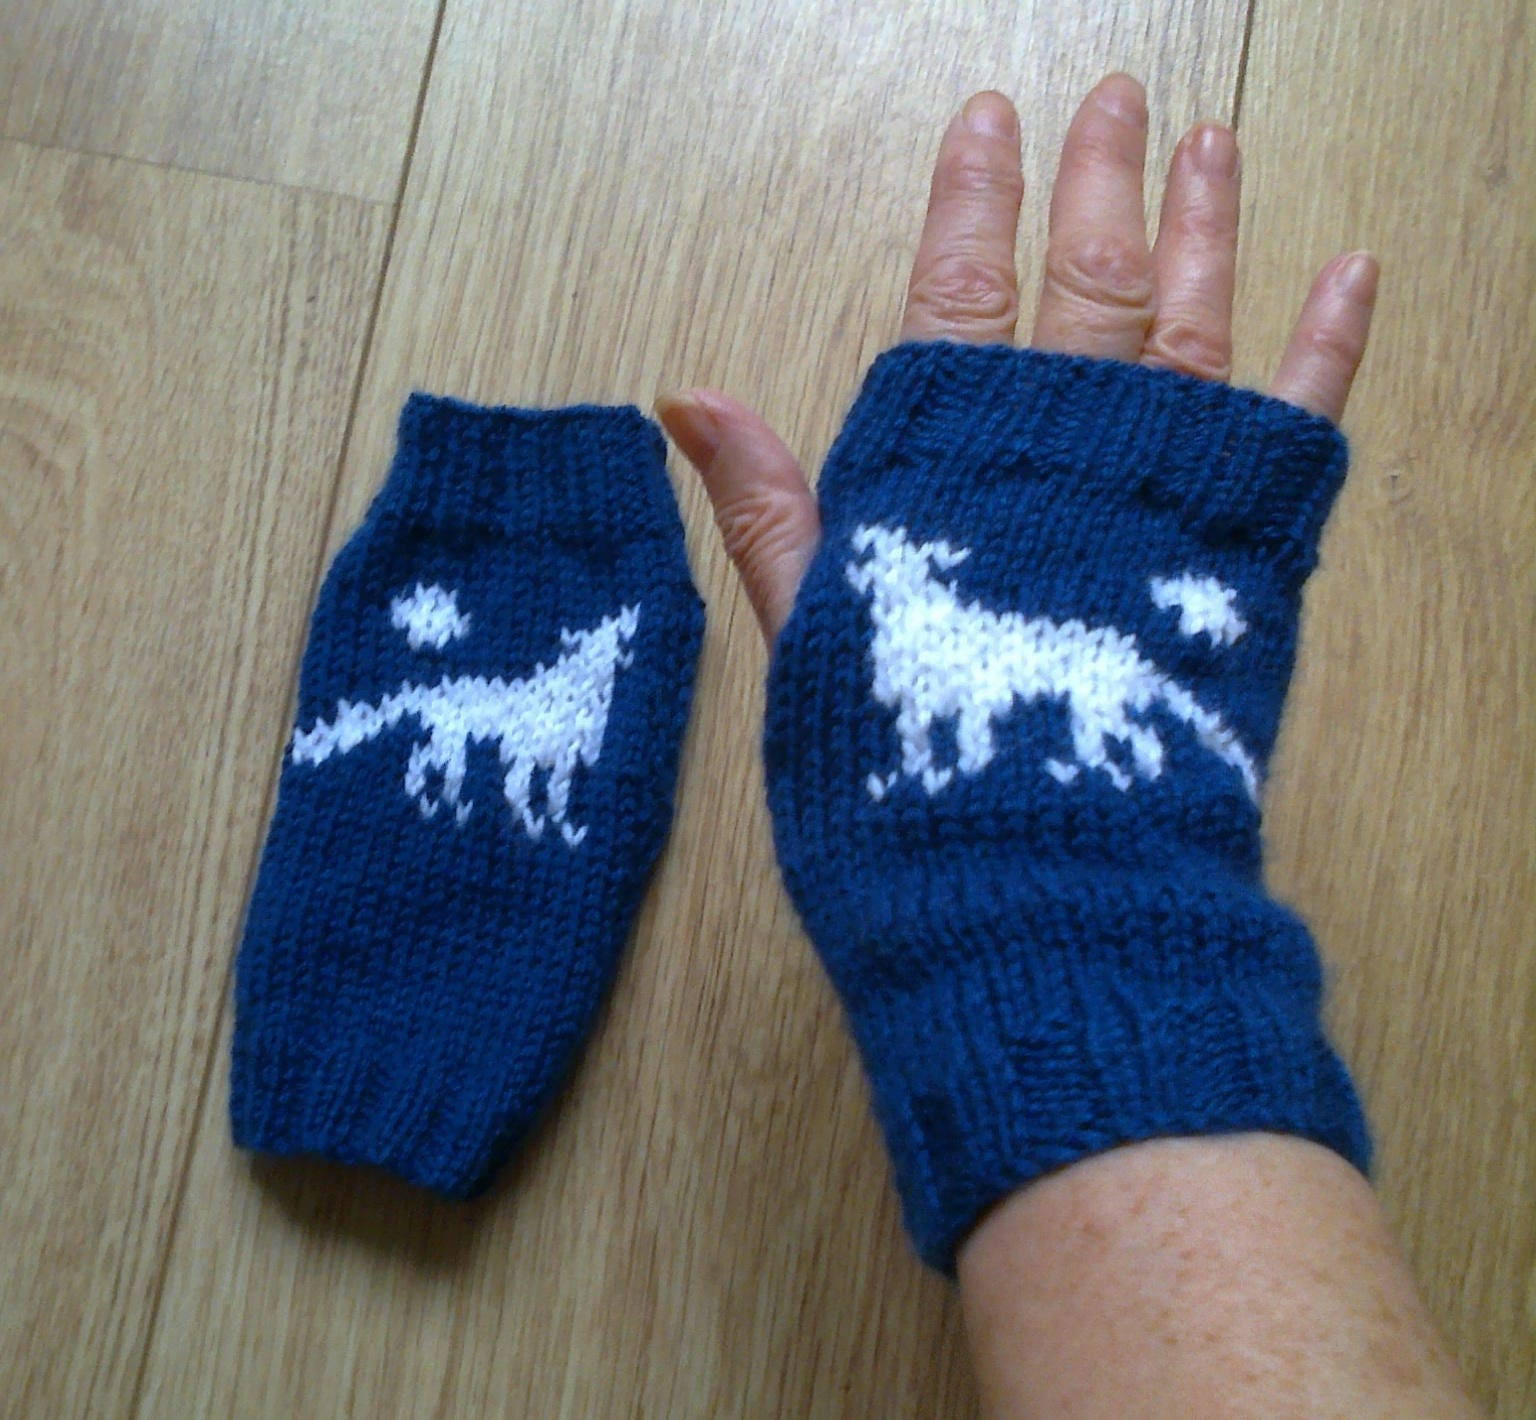 Crochet Gloves With Finger Holes >> Wrist warmers wolf and moon howling wolf dog fingerless